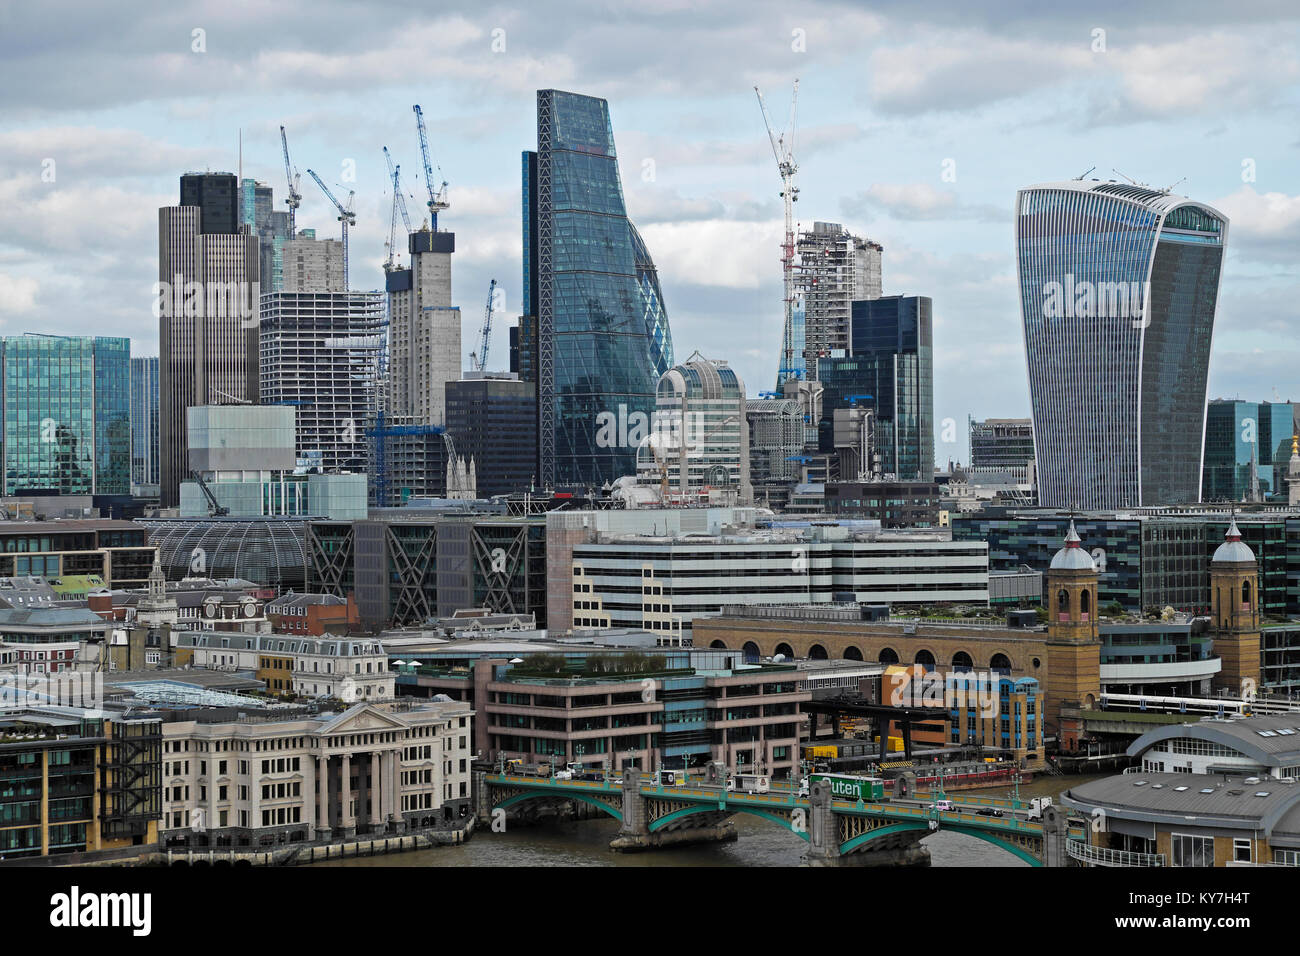 City of London skyline cityscape view of the financial district on a cloudy day with cranes and skyscrapers in 2017 - Stock Image